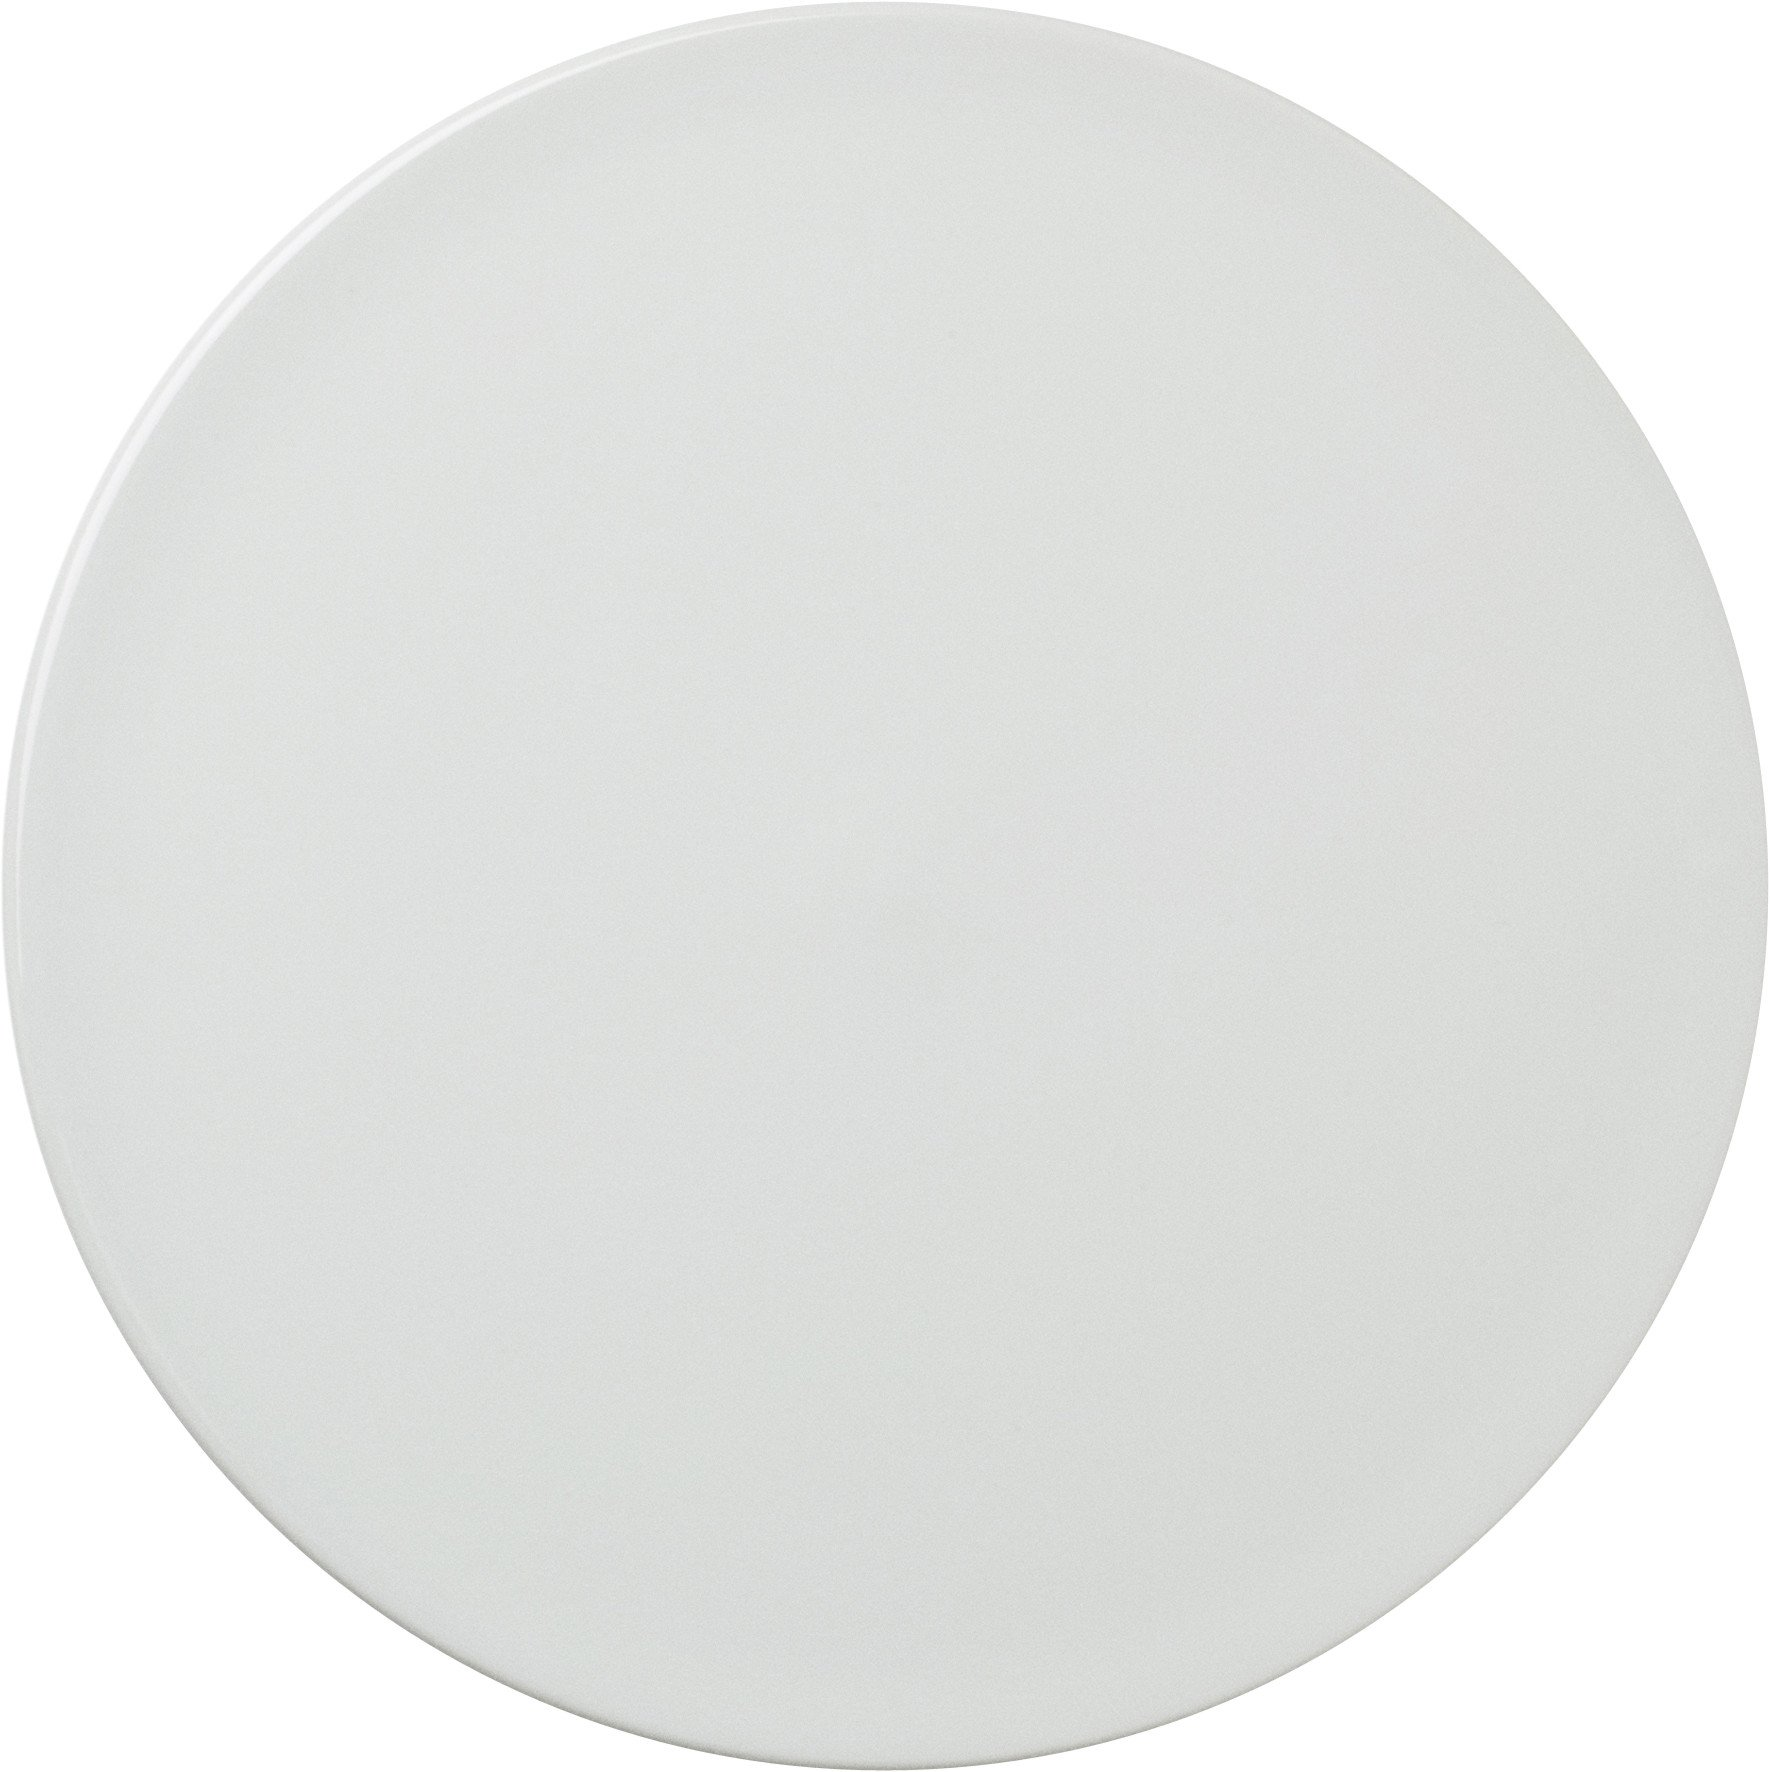 New Norm Plate/Lid White Ø 17,5cm by Norm Architects for Menu